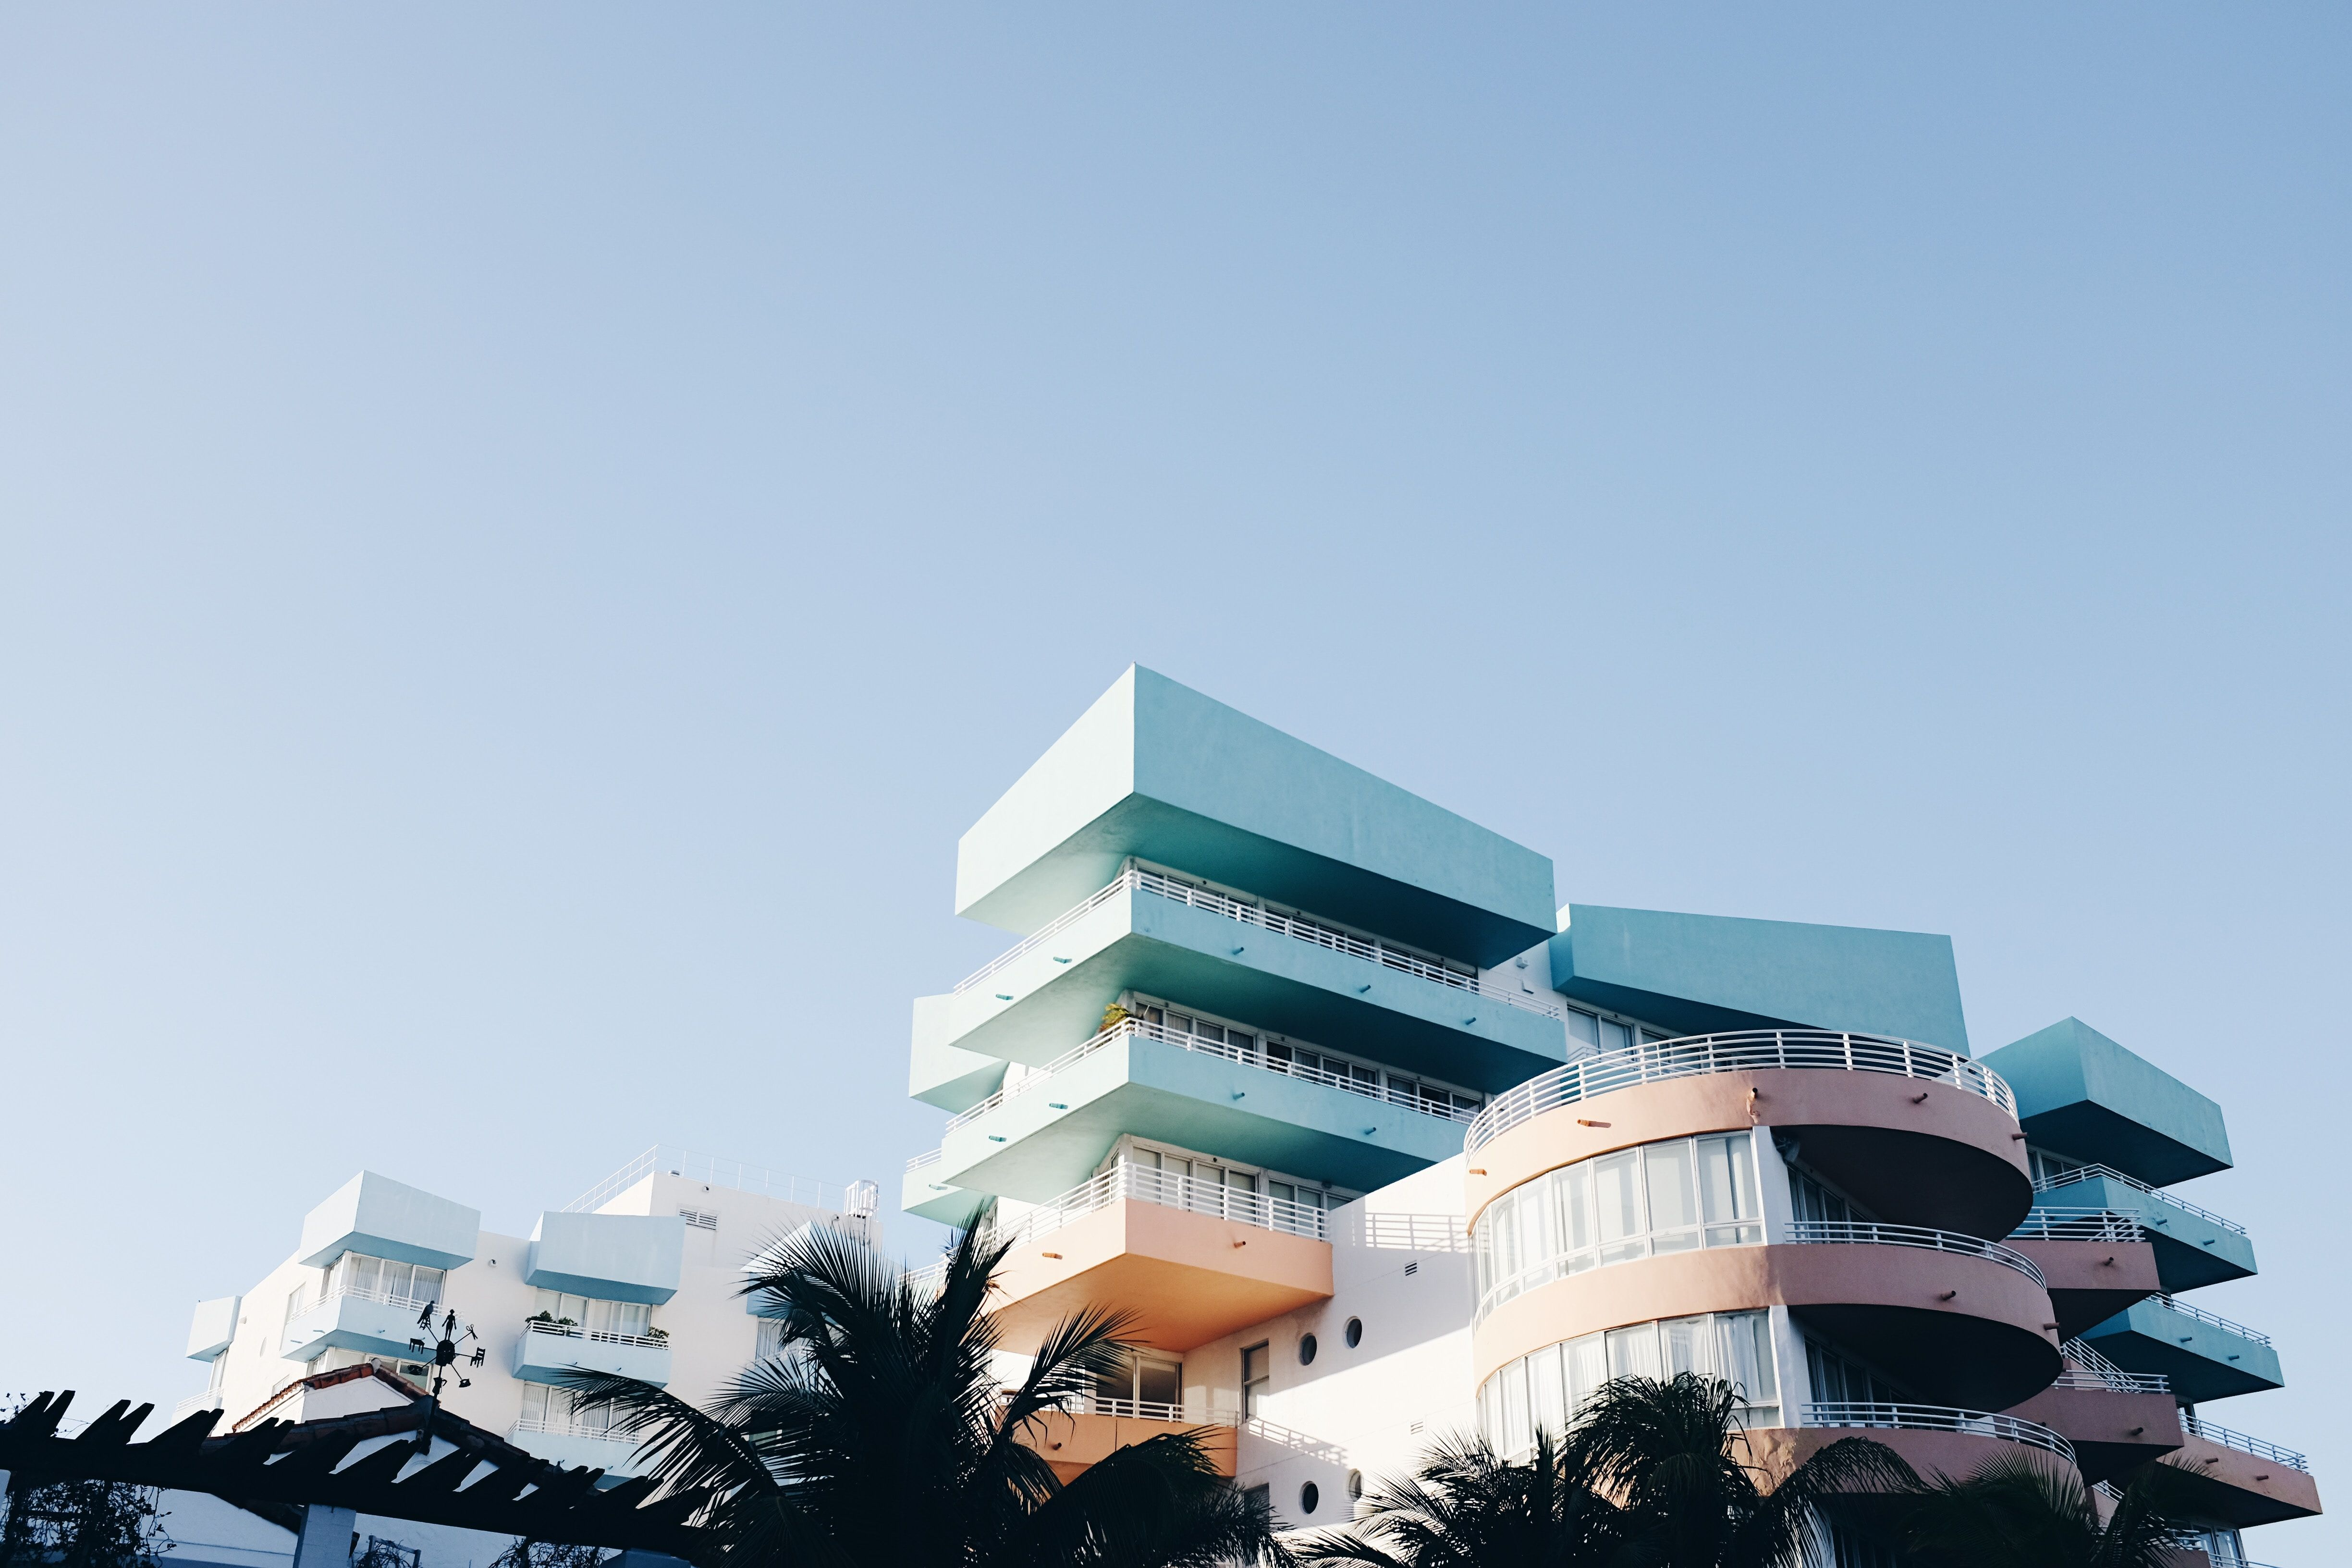 Cotton Candy Skies And Pastel Colored Architecture Sounds Like A